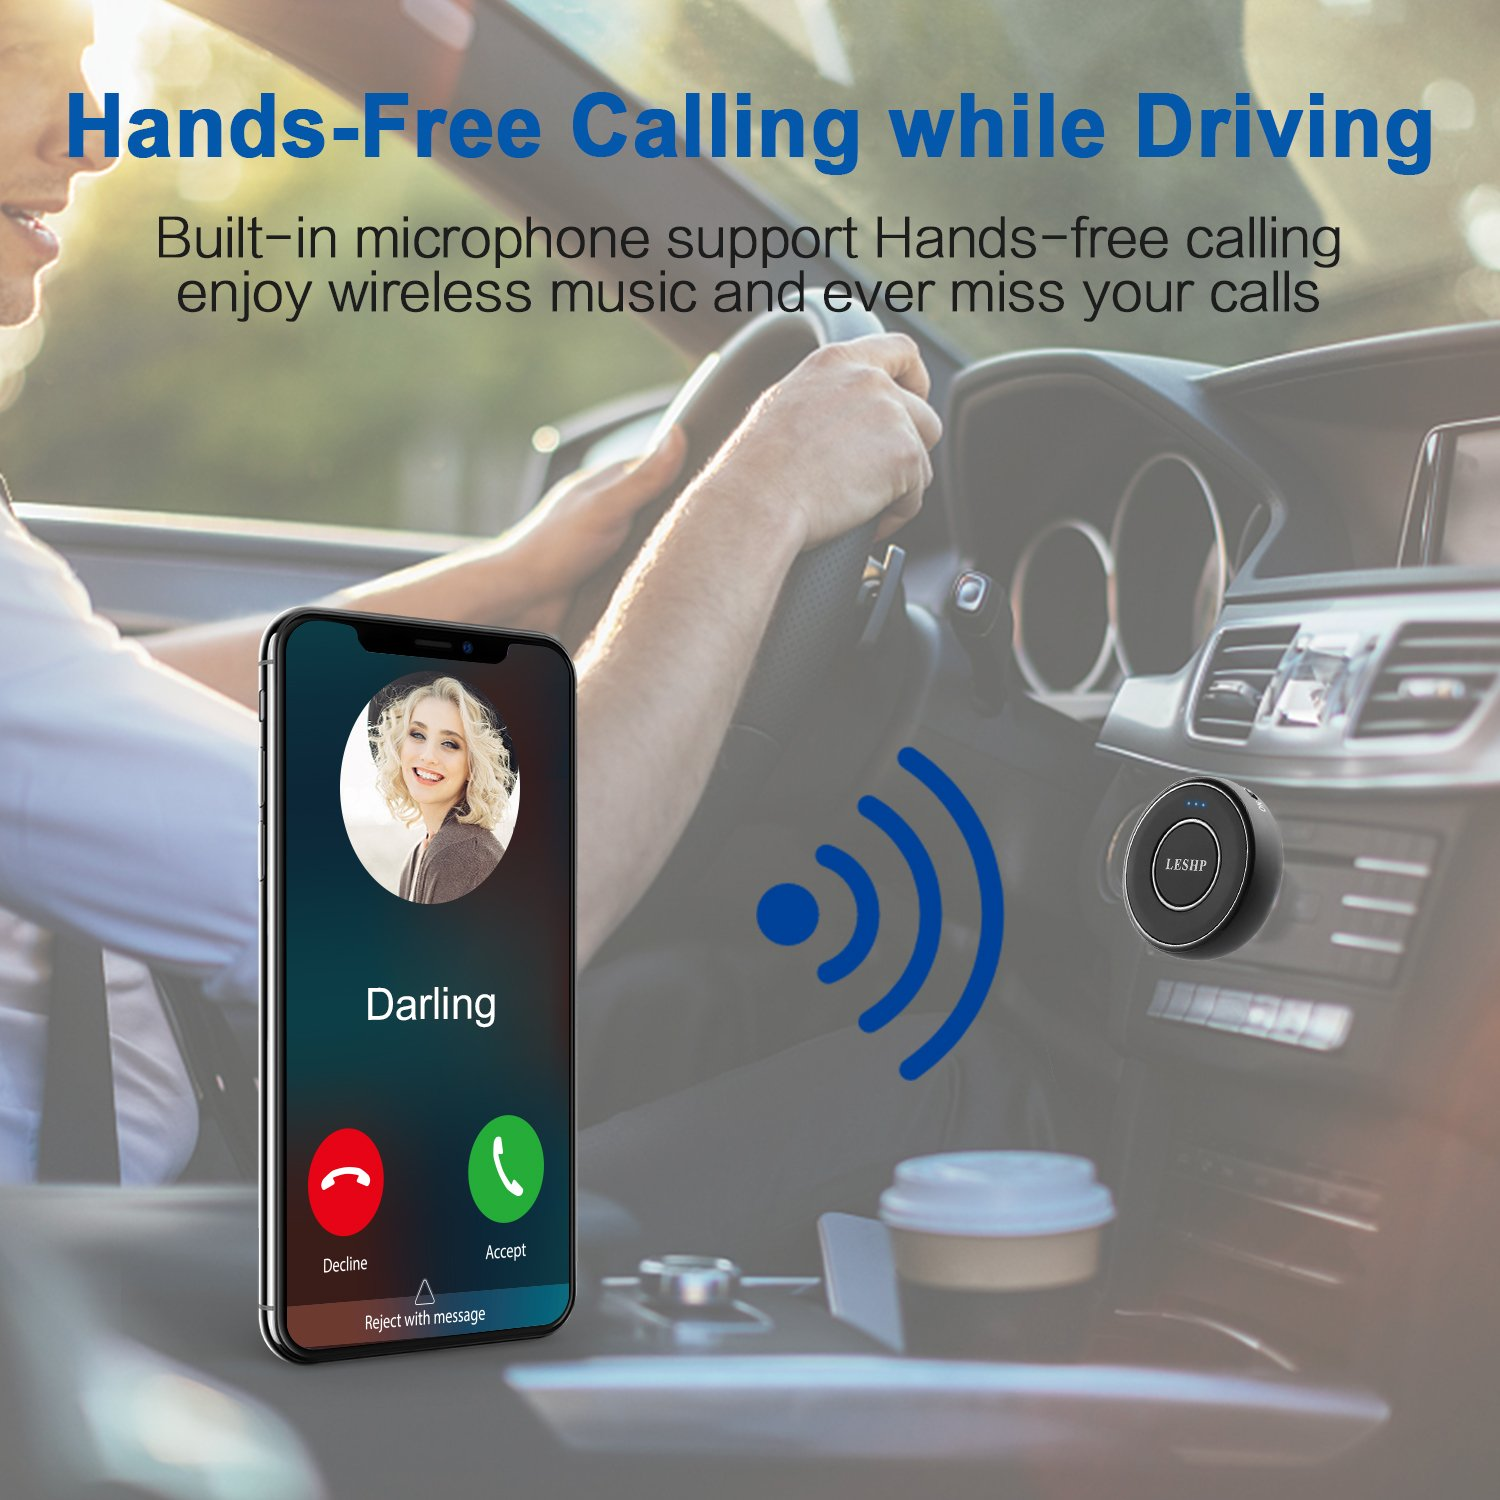 Wireless Stereo Audio Music Bluetooth 4.1 Transmitter and Receiver Adapter for Car Amplifier, TV, PC, Home, Headphones, Speakers  - 3.5mm Output Port, Bluetooth 4.1, Long Battery Powered, Black